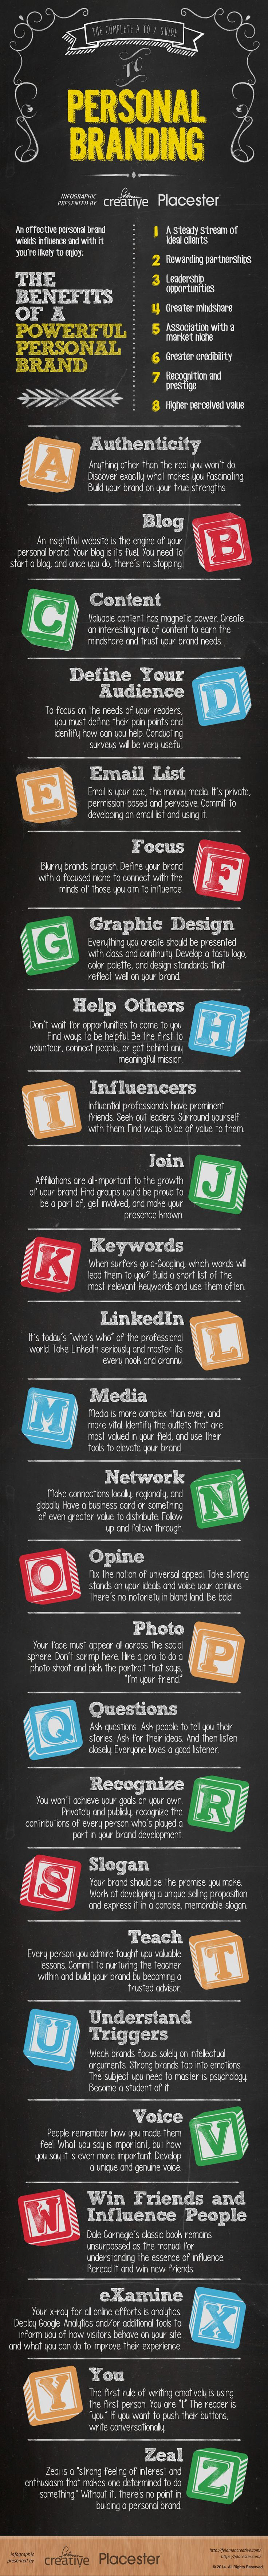 26 Tips for Creating a Powerful Personal Brand Online - Infographic